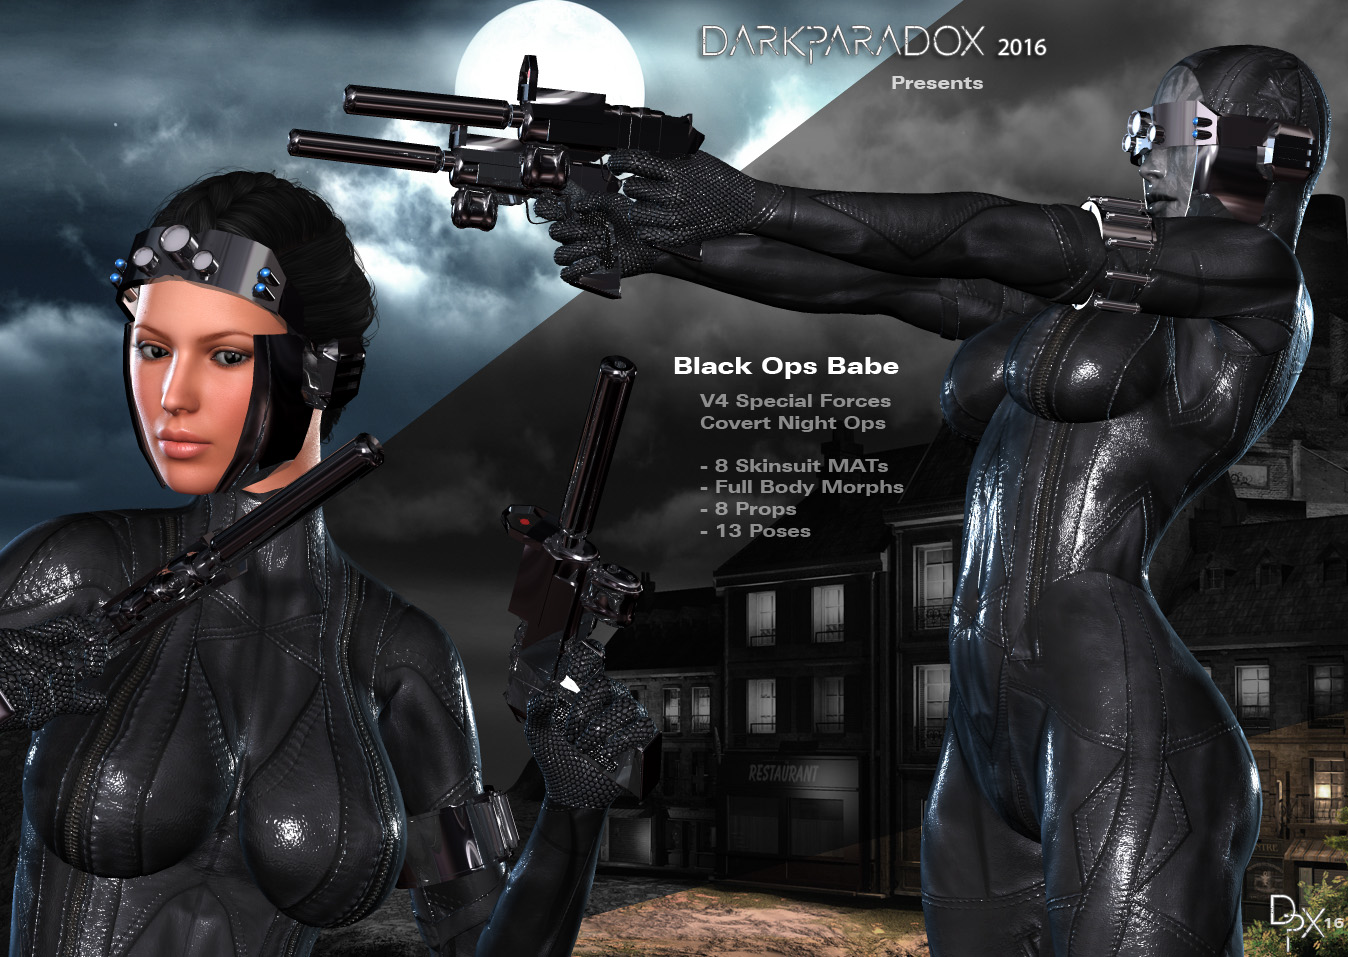 Black Ops Babe